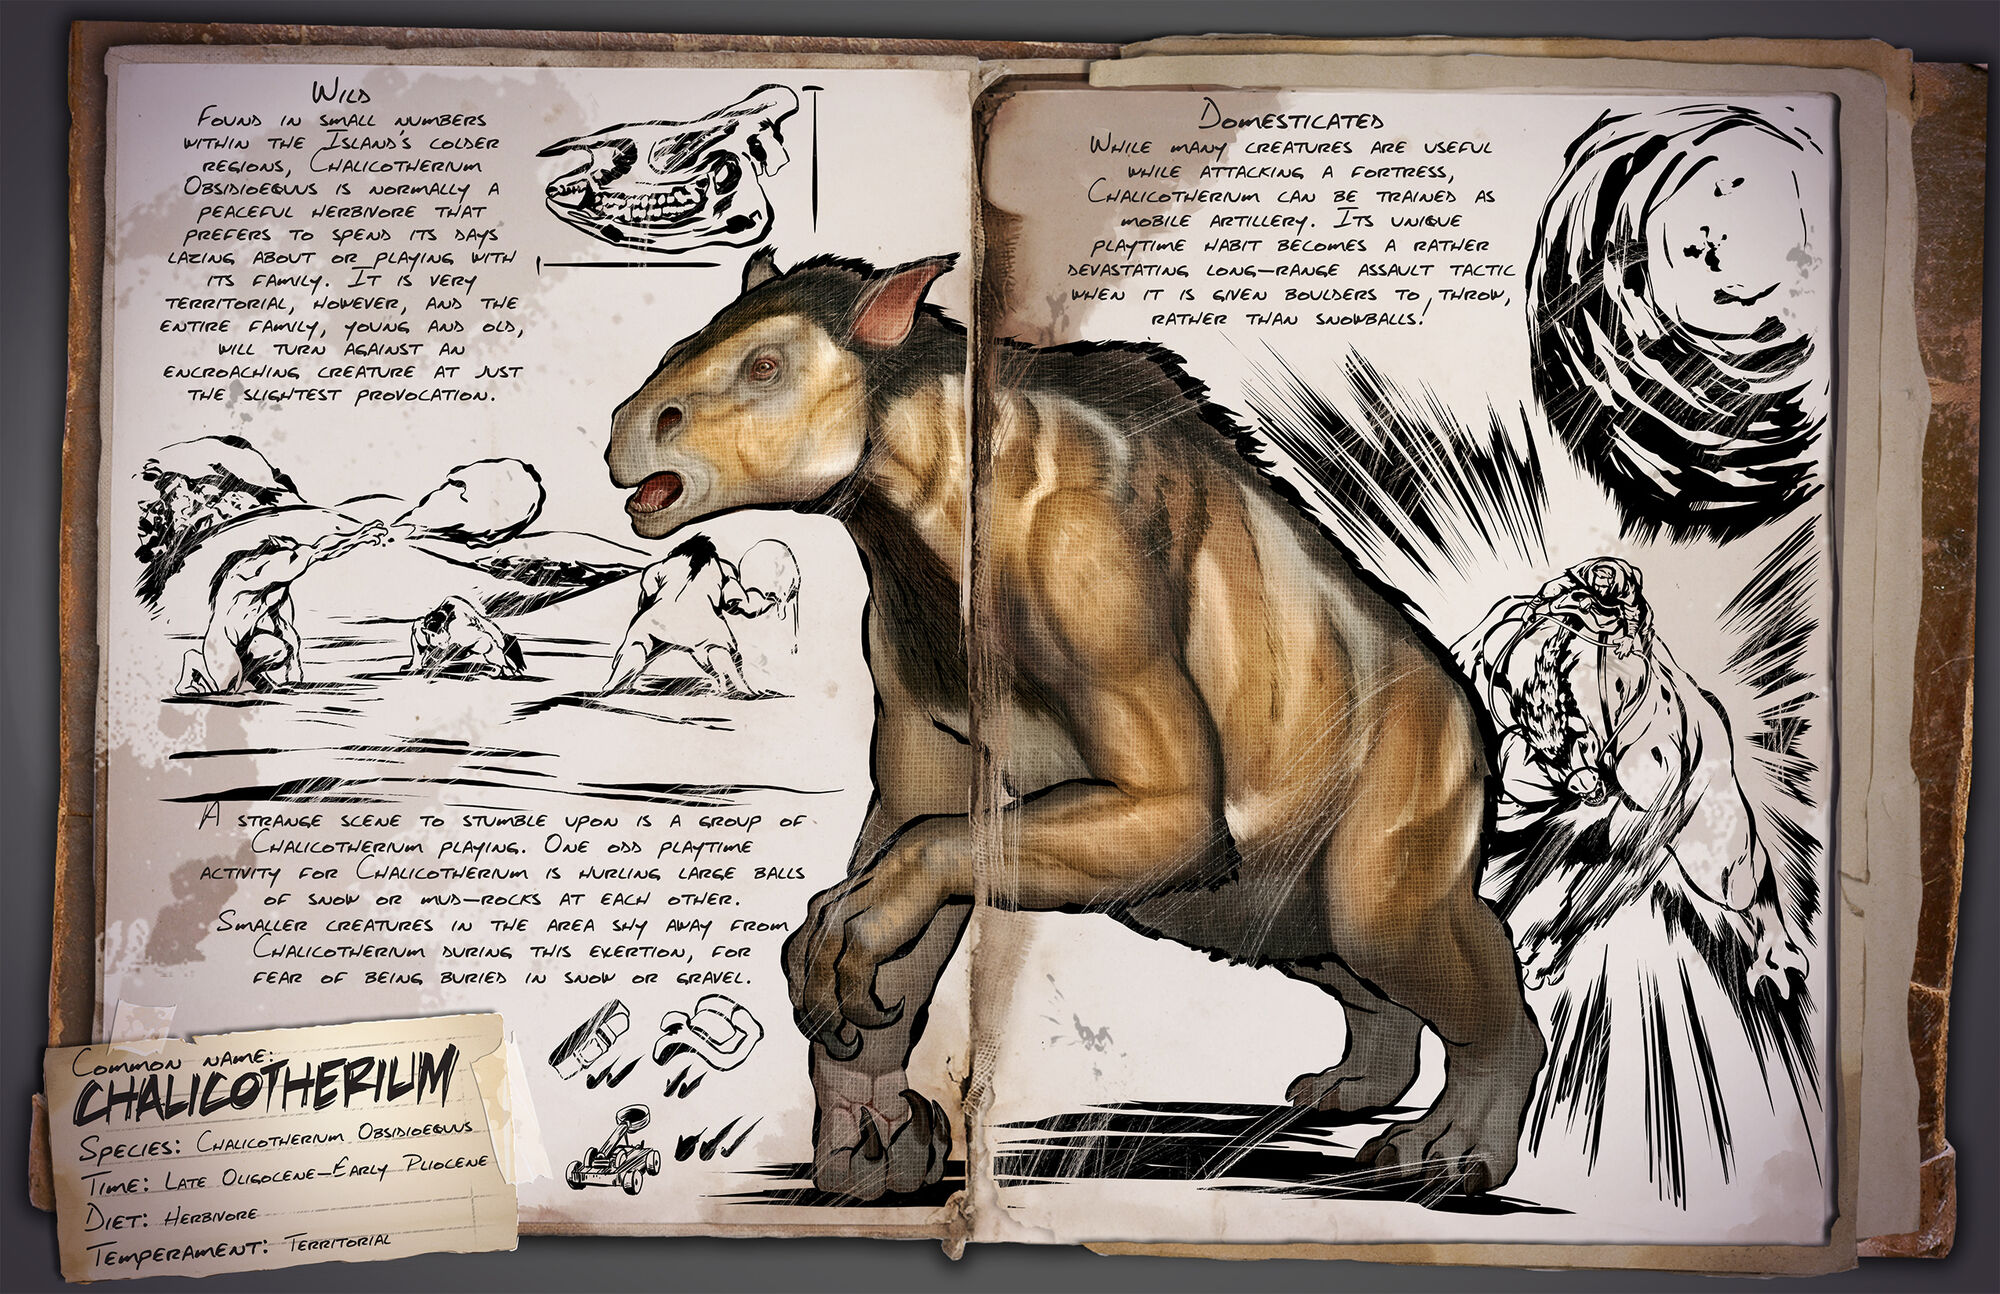 Chalicotherium | ARK: Survival Evolved Wiki | FANDOM powered by Wikia